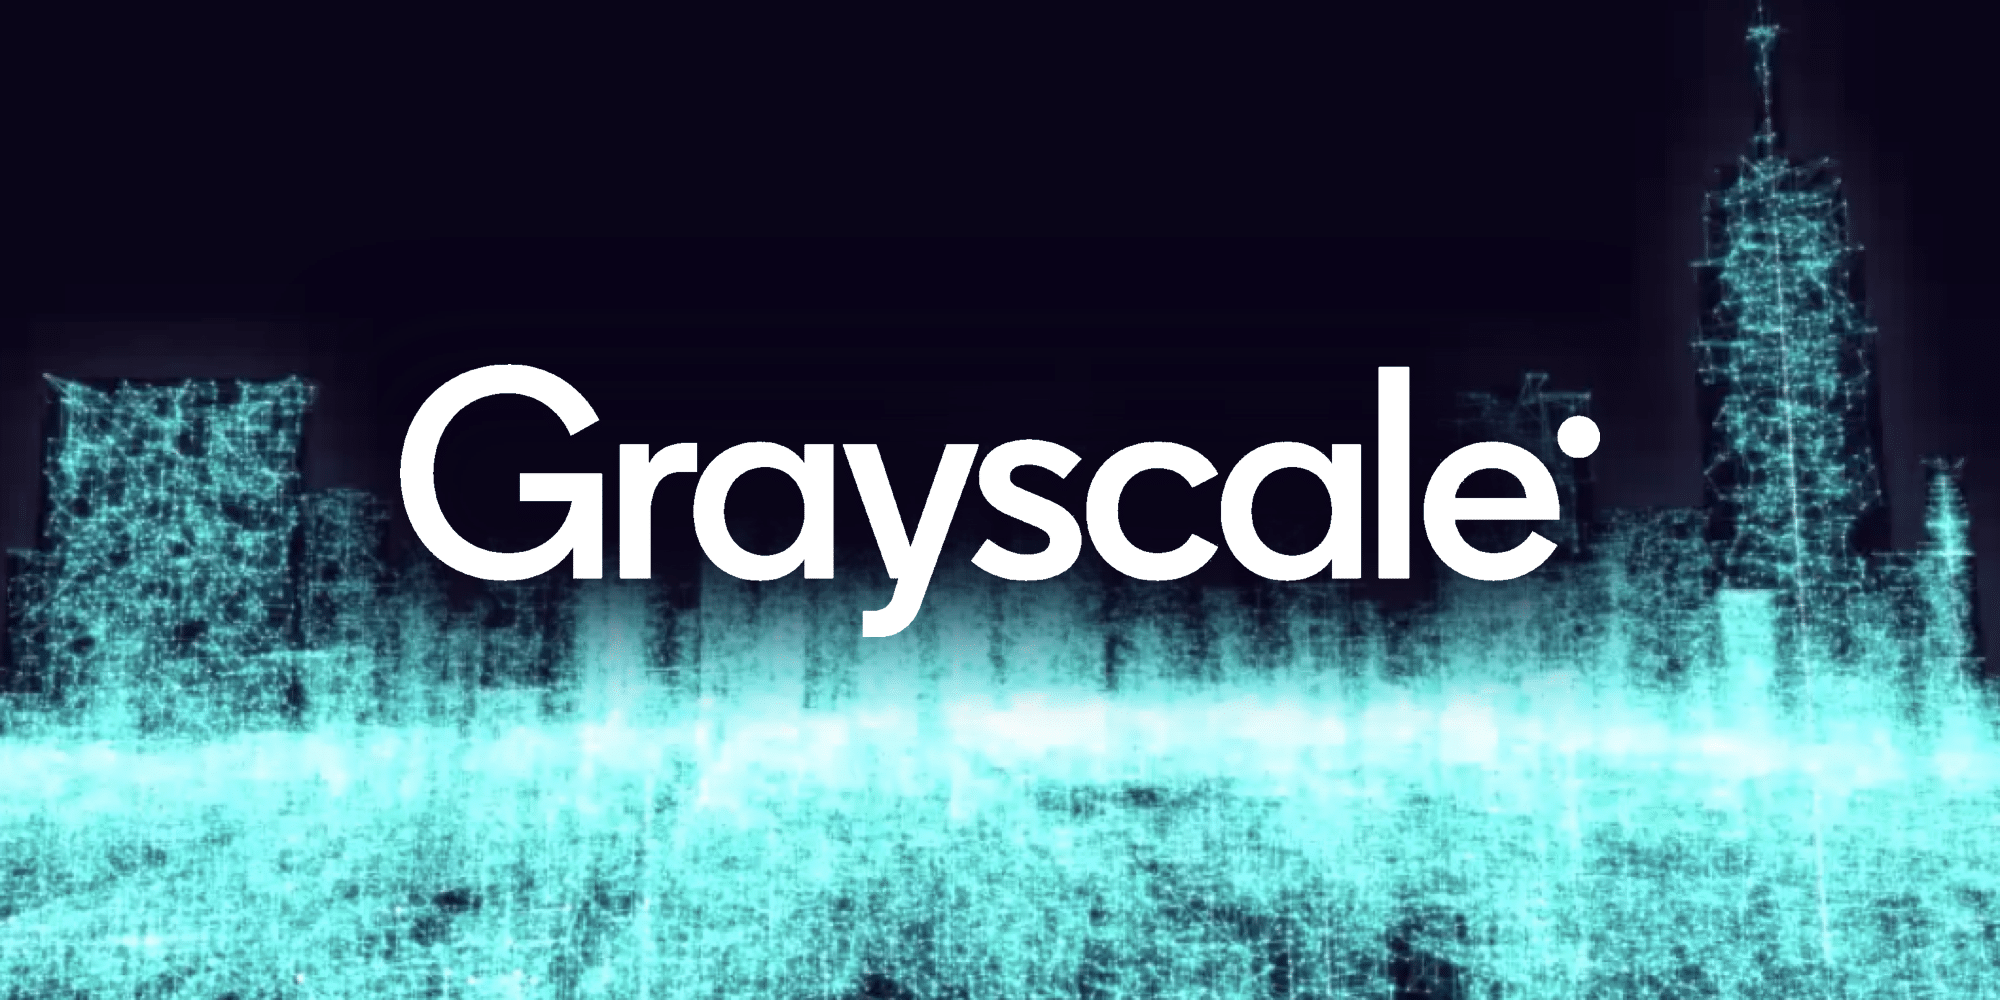 Grayscale Investments: Trends and Analysis for Institutional Investors